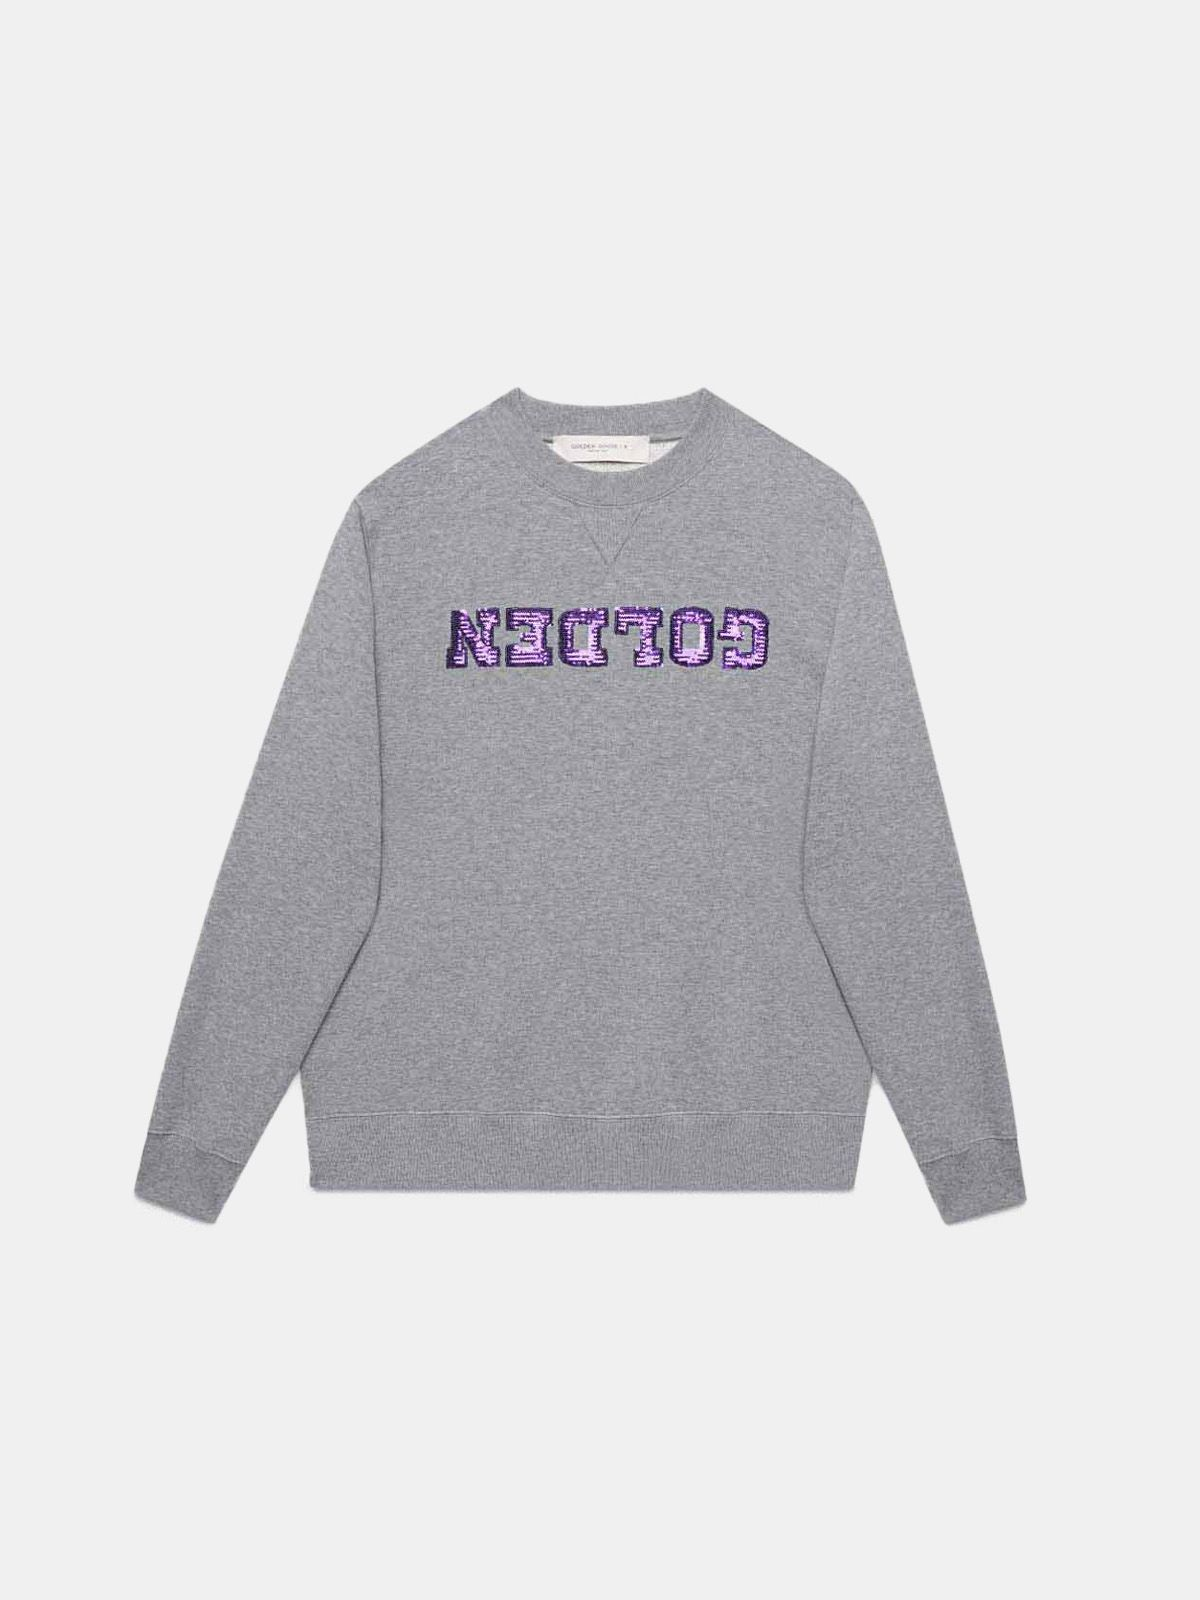 Grey Golden sweatshirt with sequinned logo